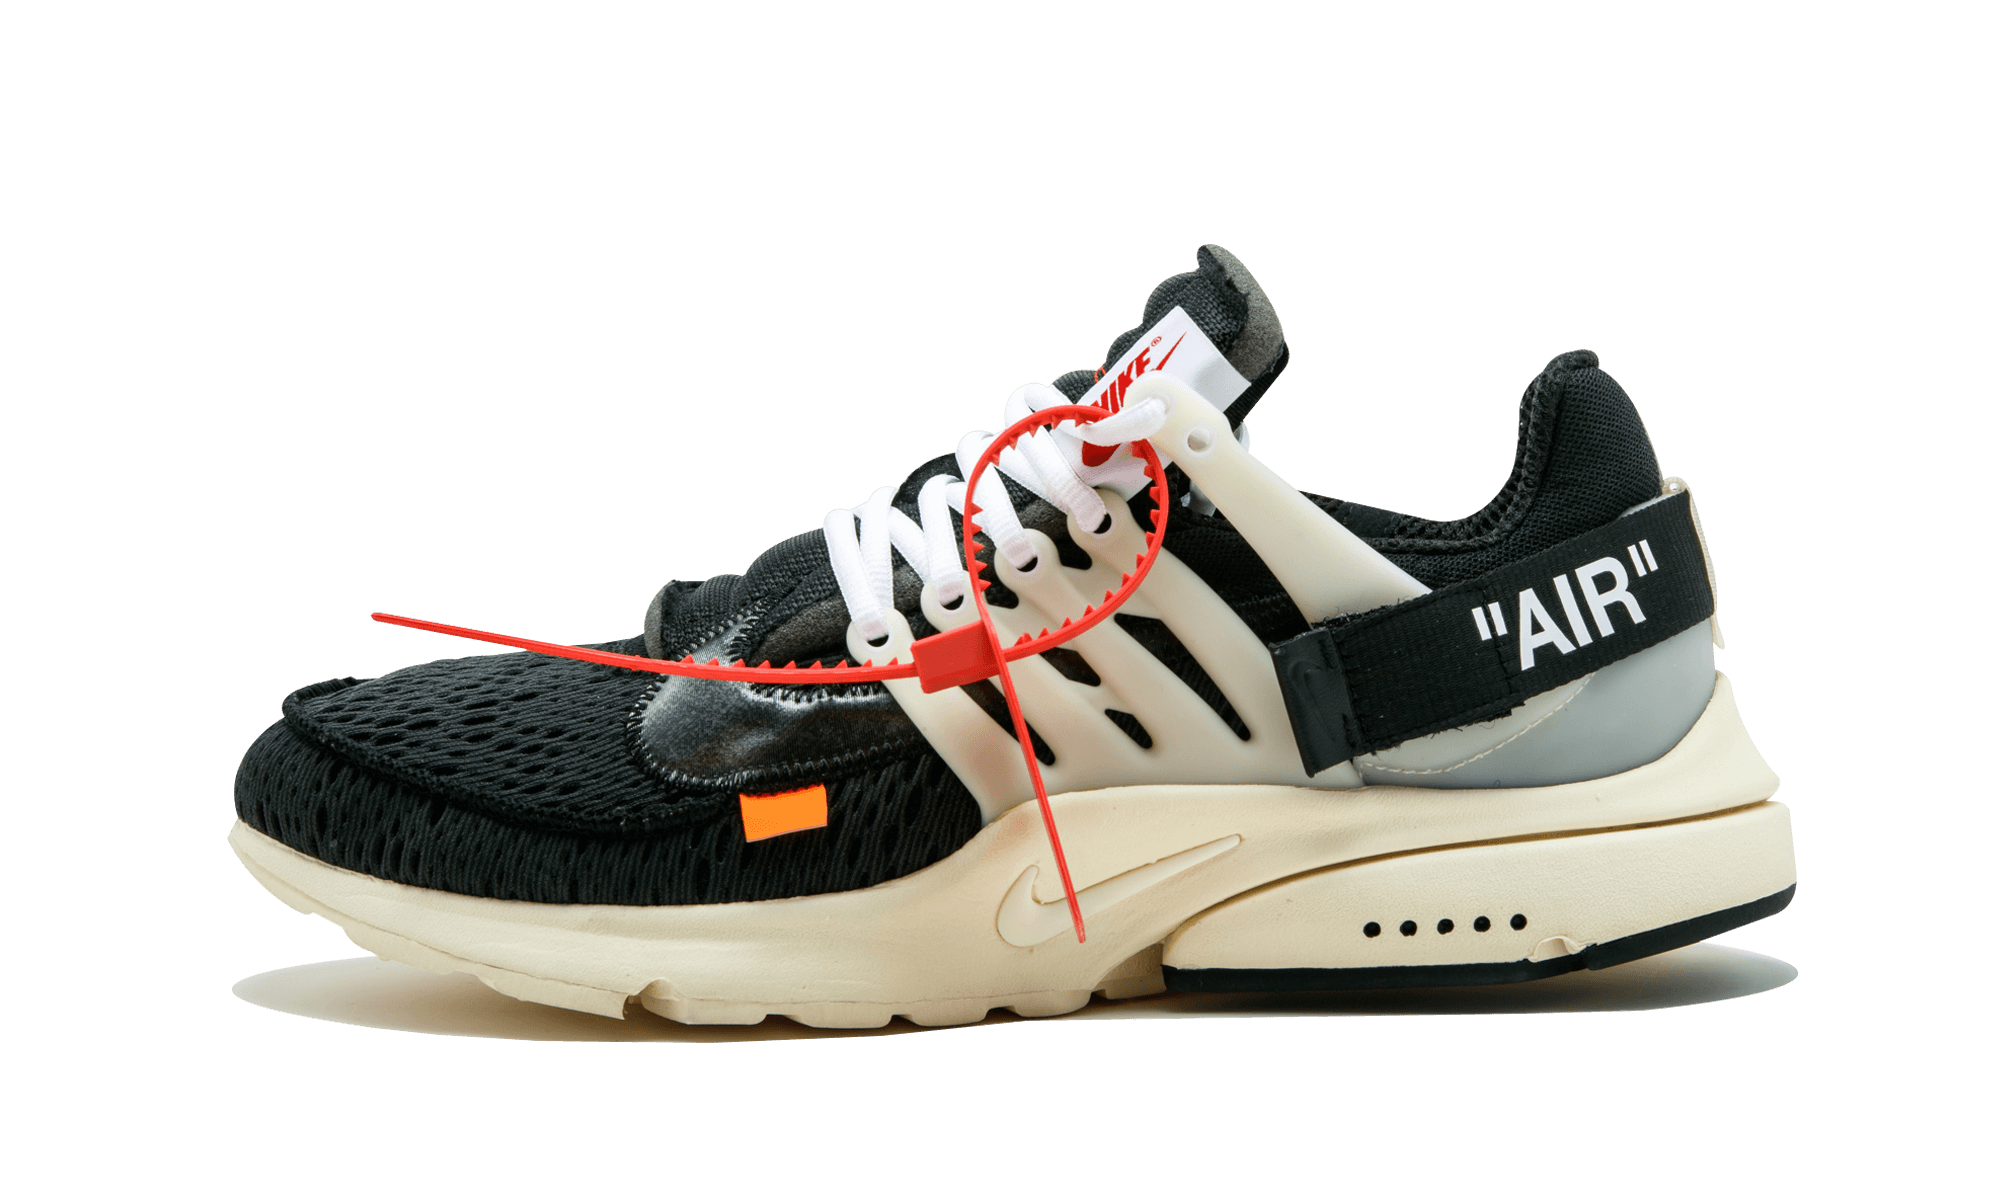 Nike The 10 Air Presto Off White Aa3830 001 Red Sneakers Nike Air Presto Air Presto Black